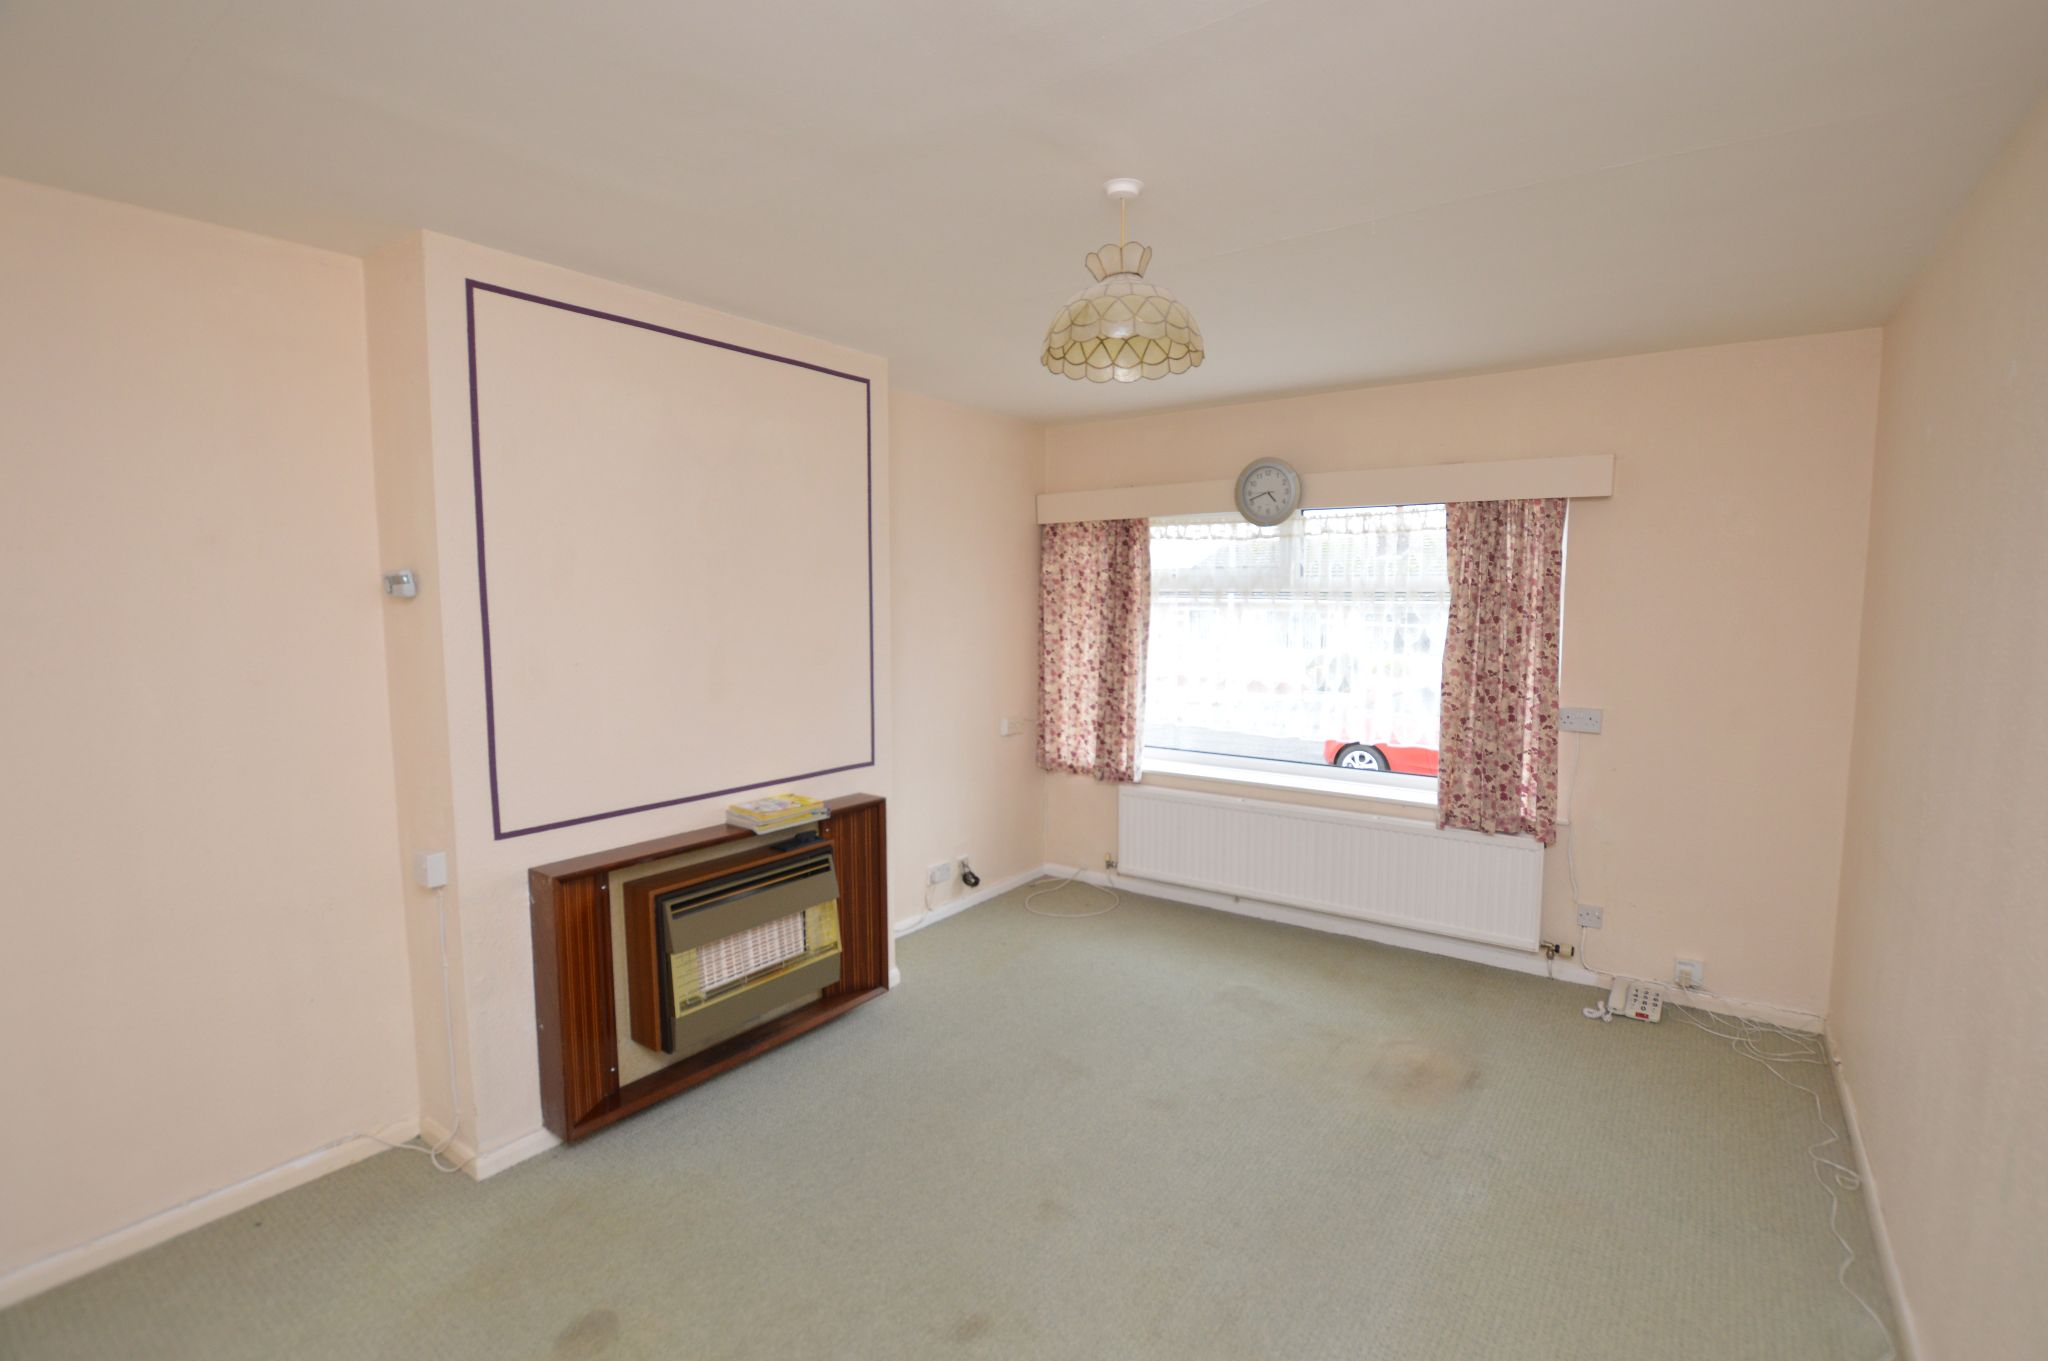 2 bedroom semi-detached bungalow For Sale in Abergele - Lounge